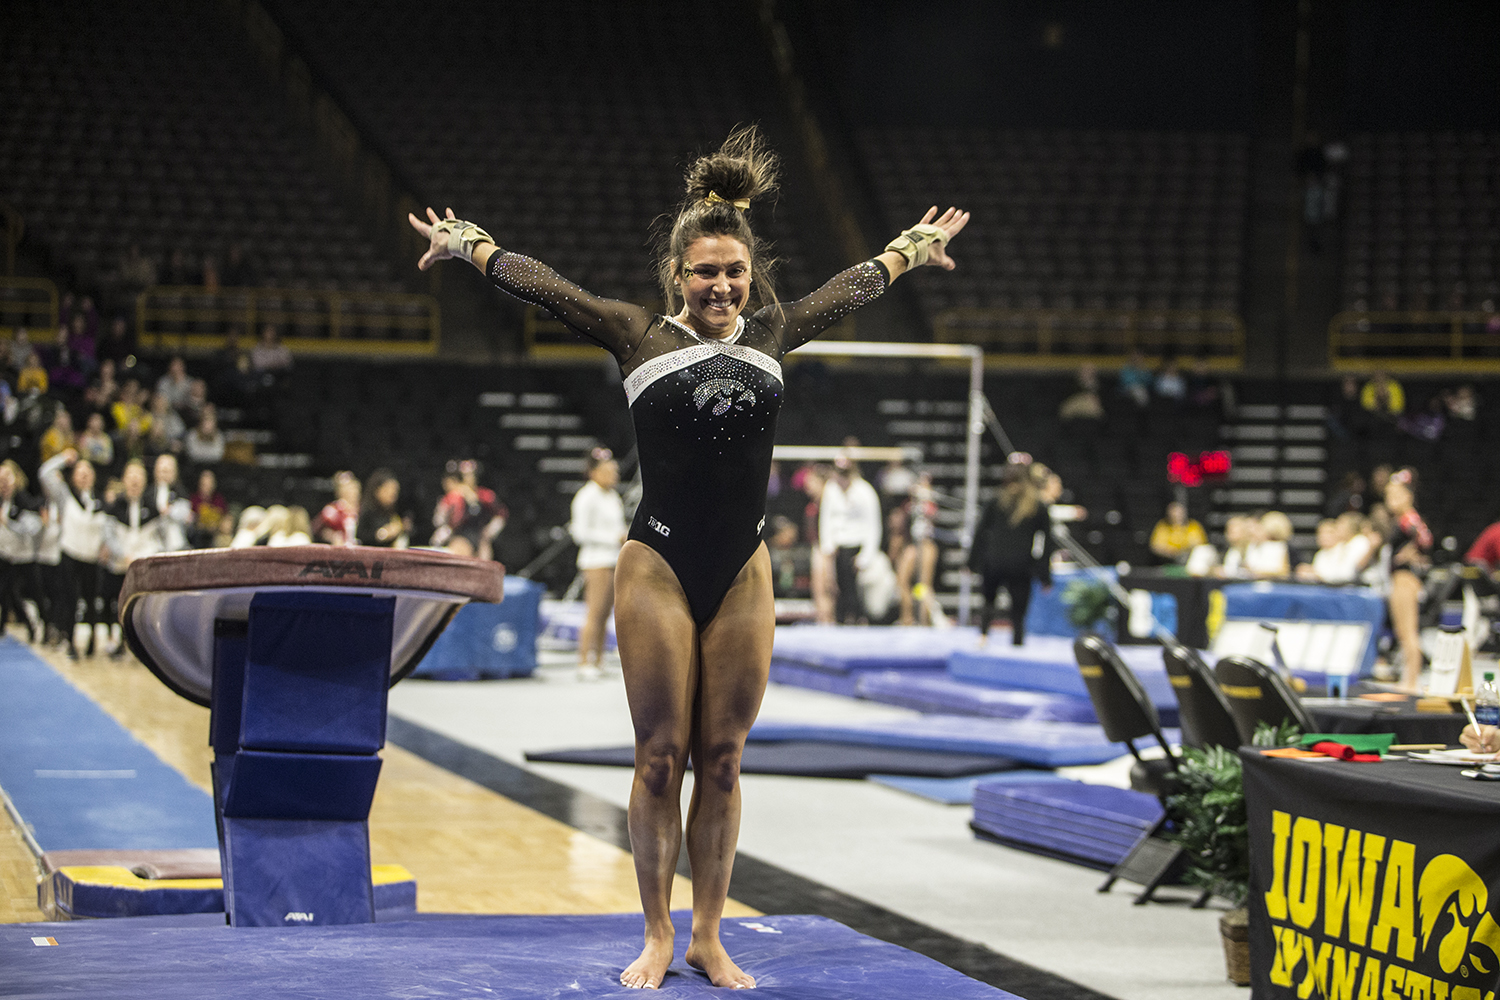 Iowa+gymnast+Bridget+Killian+sticks+her+landing+in+a+meet+against+Rutgers+on+Saturday%2C+January+26%2C+2019.+The+Hawkeyes+defeated+the+Scarlet+Knights+194.575+to+191.675.